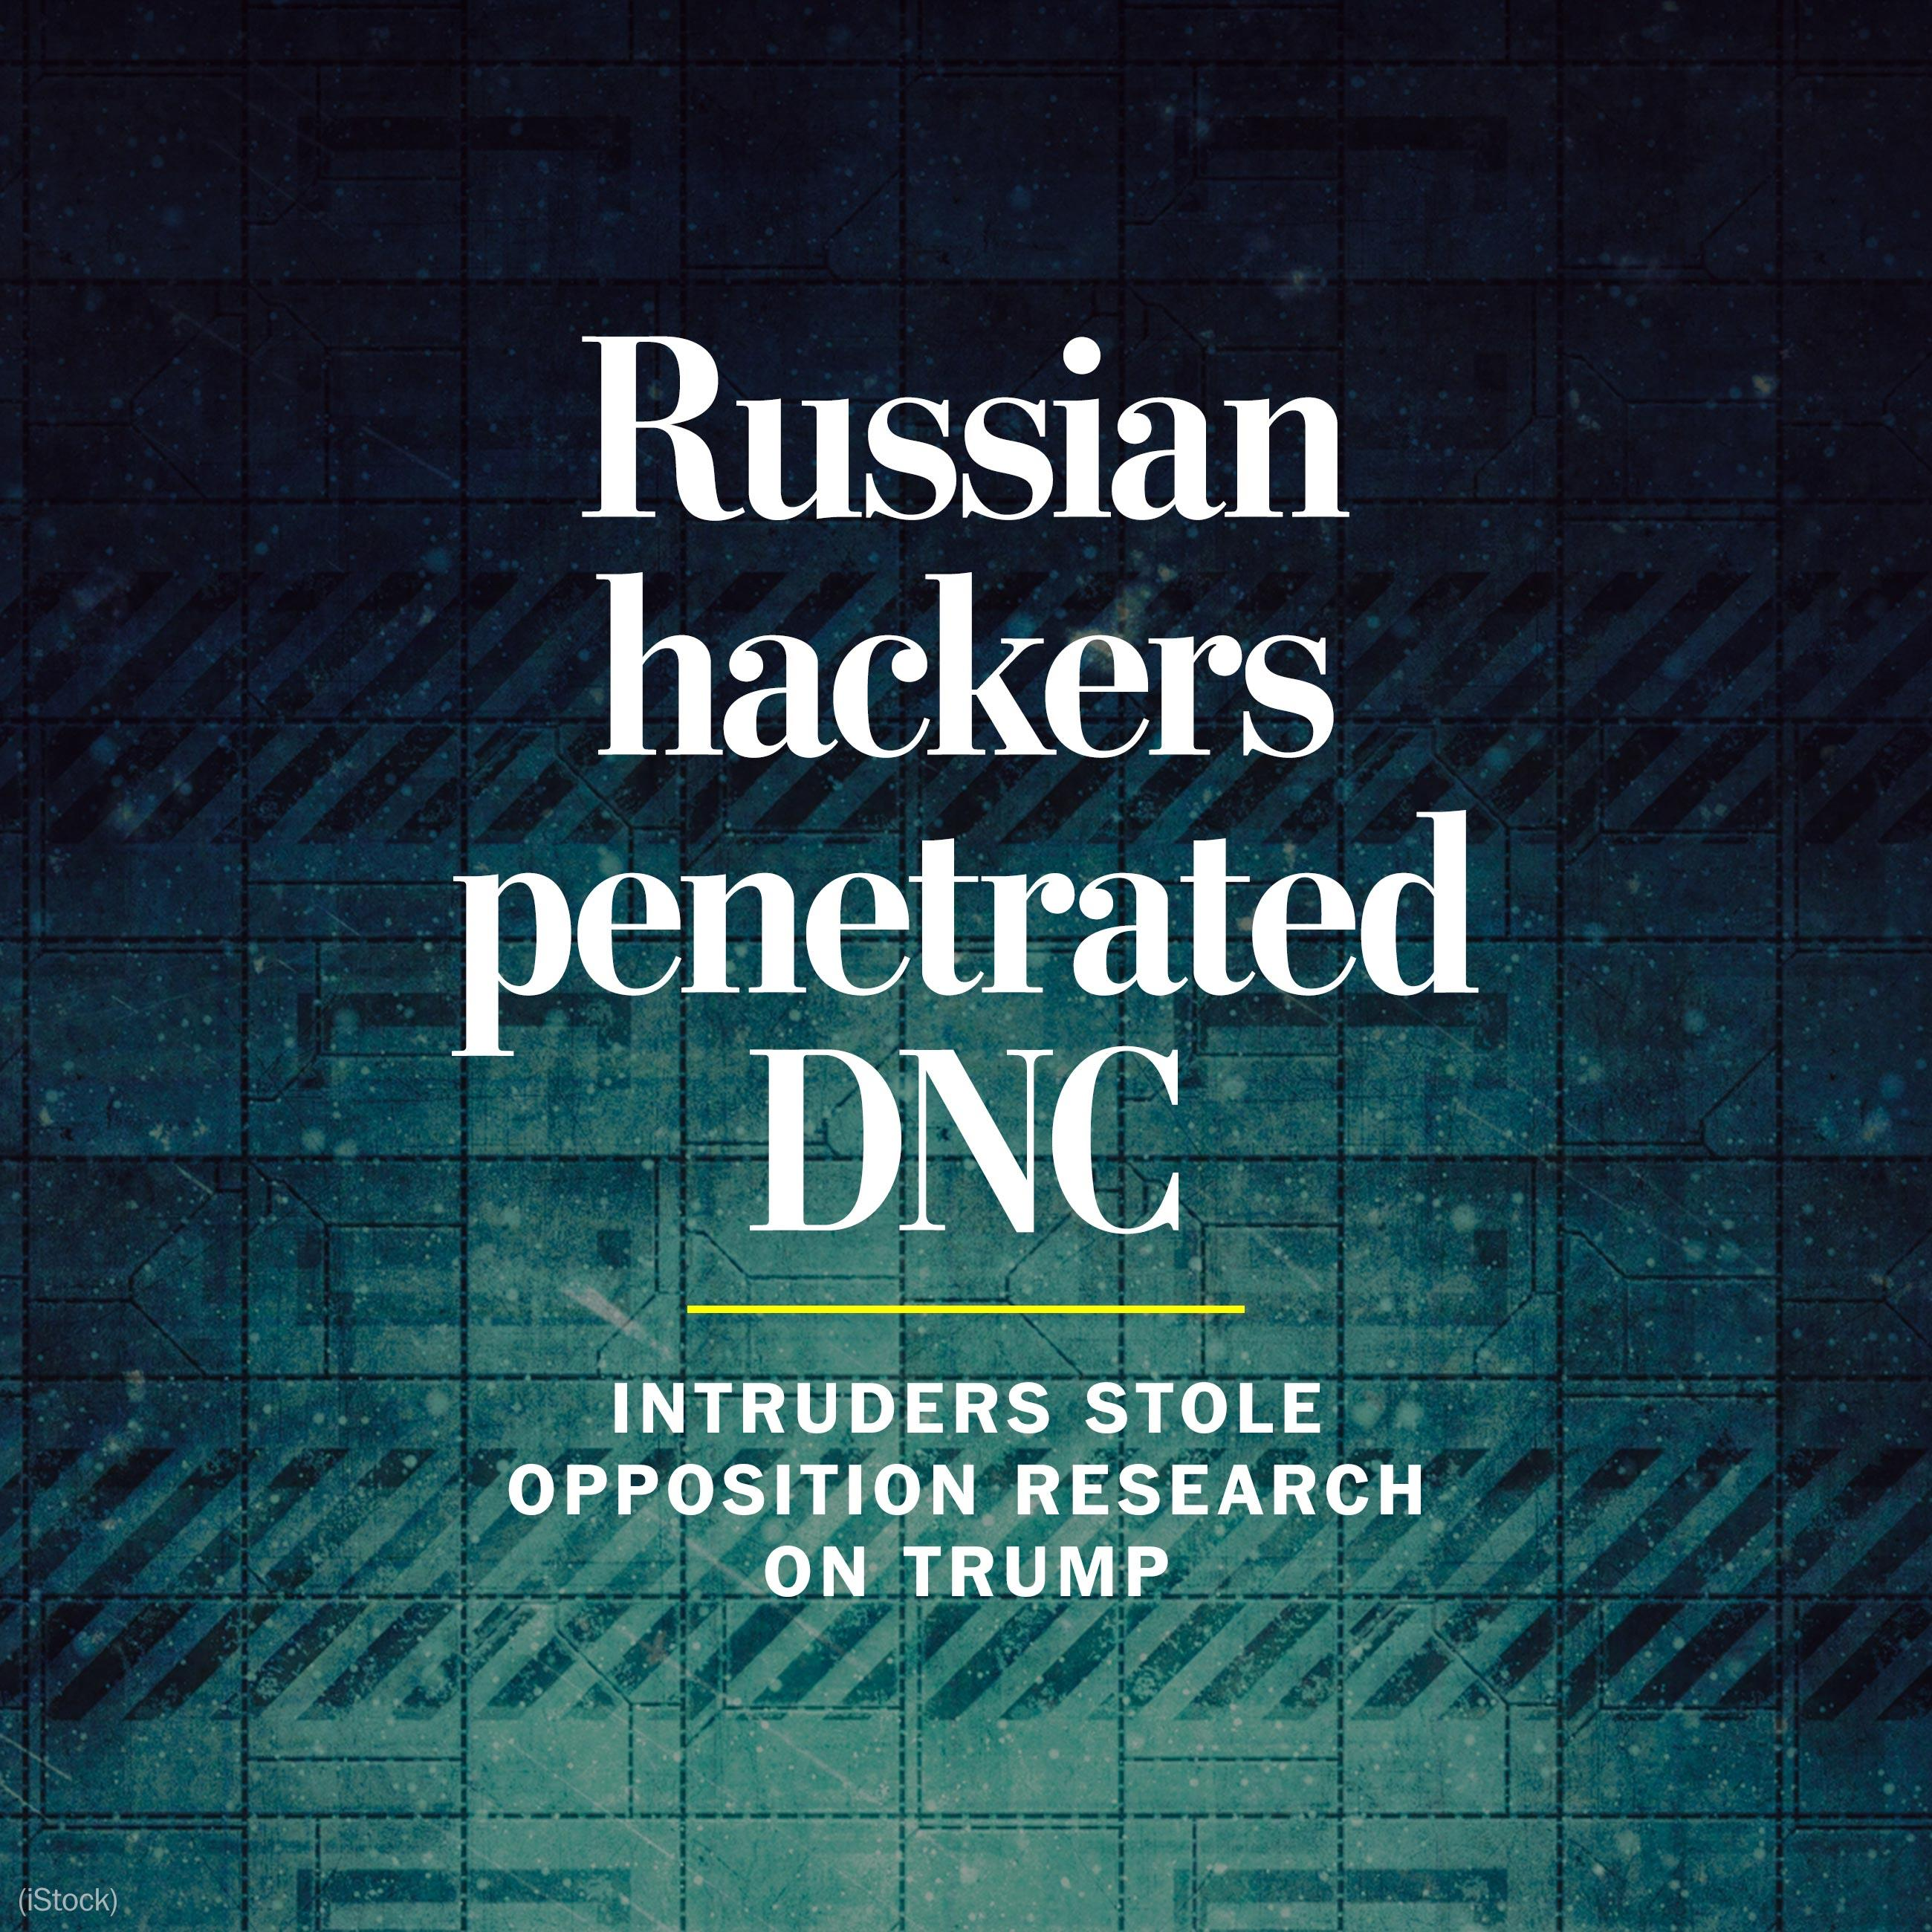 Russian government hackers penetrated DNC, stole opposition research on Trump